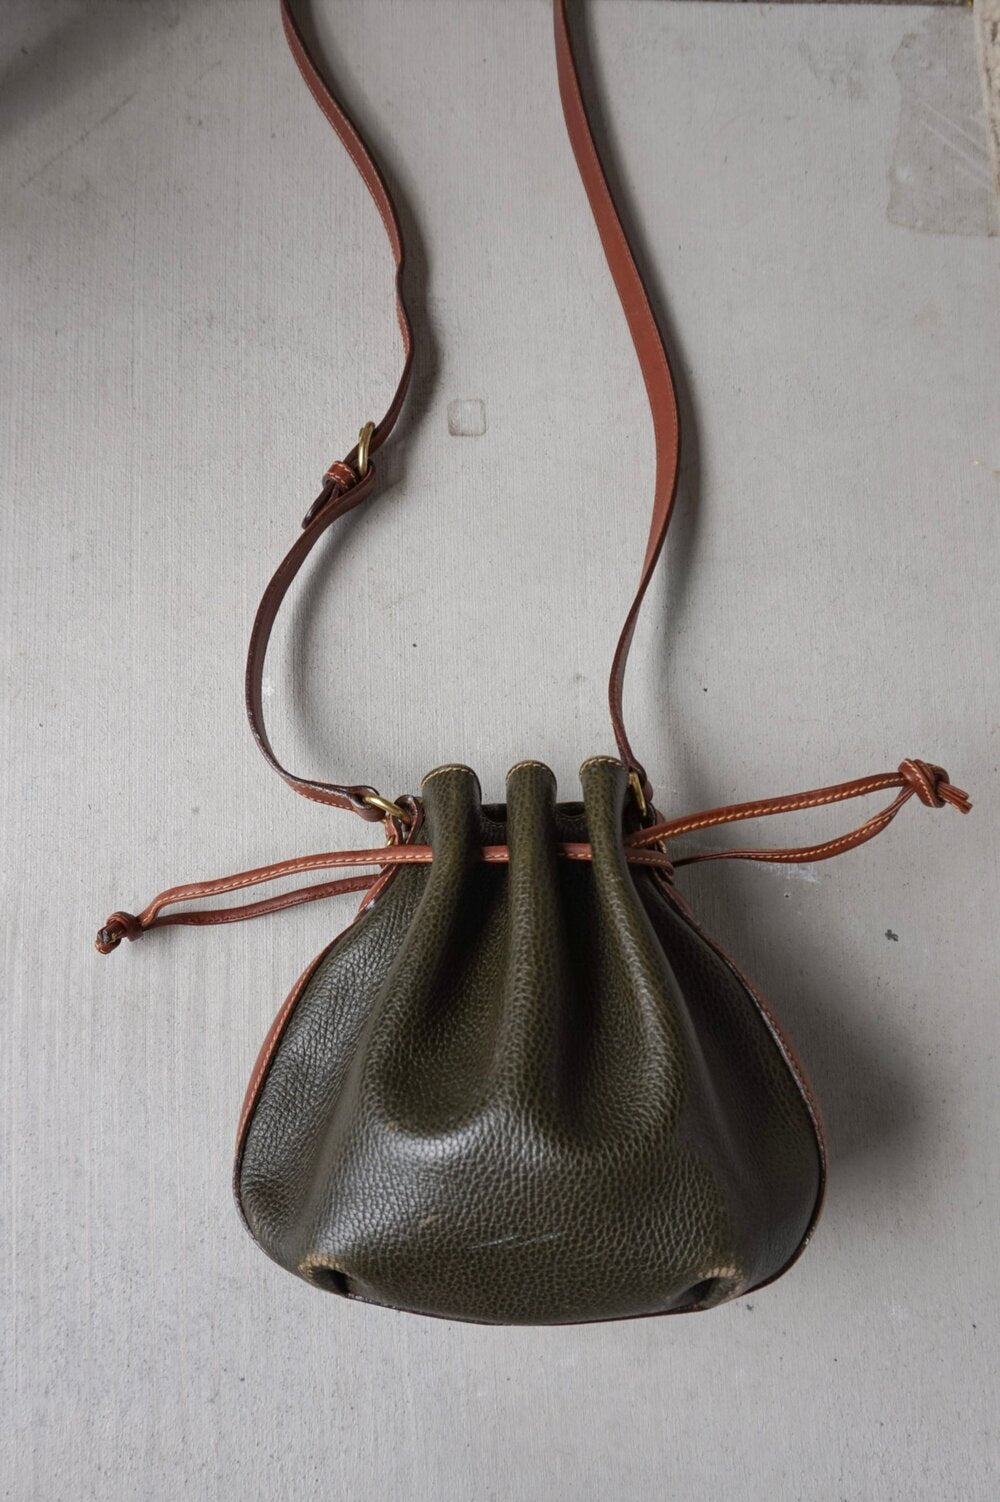 Vintage Coach hunter green drawstring leather crossbody bag